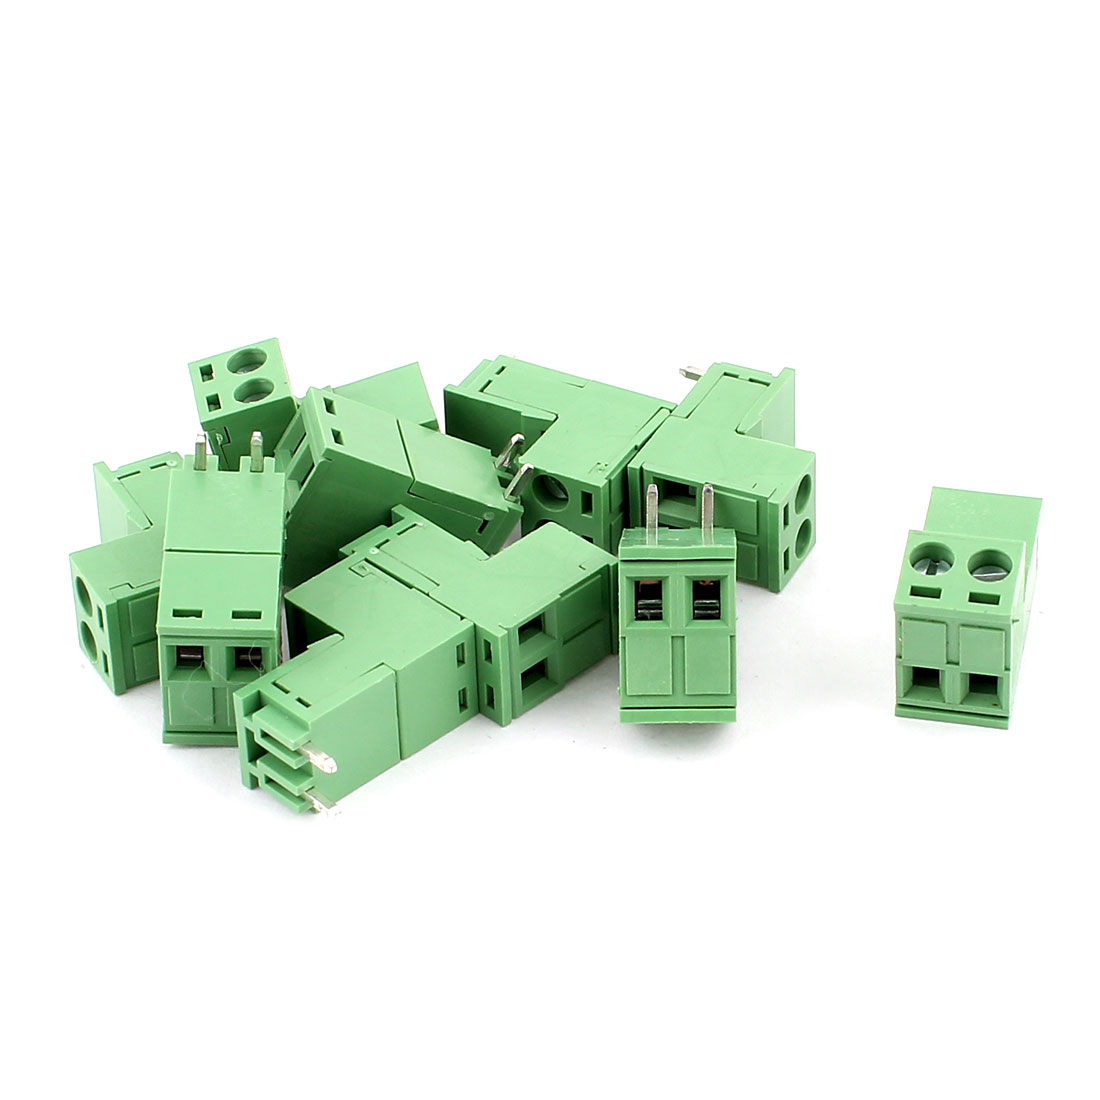 10 Pcs AC 300V 10A PCB Screw Terminal Block Connector 5.08mm Pitch Green